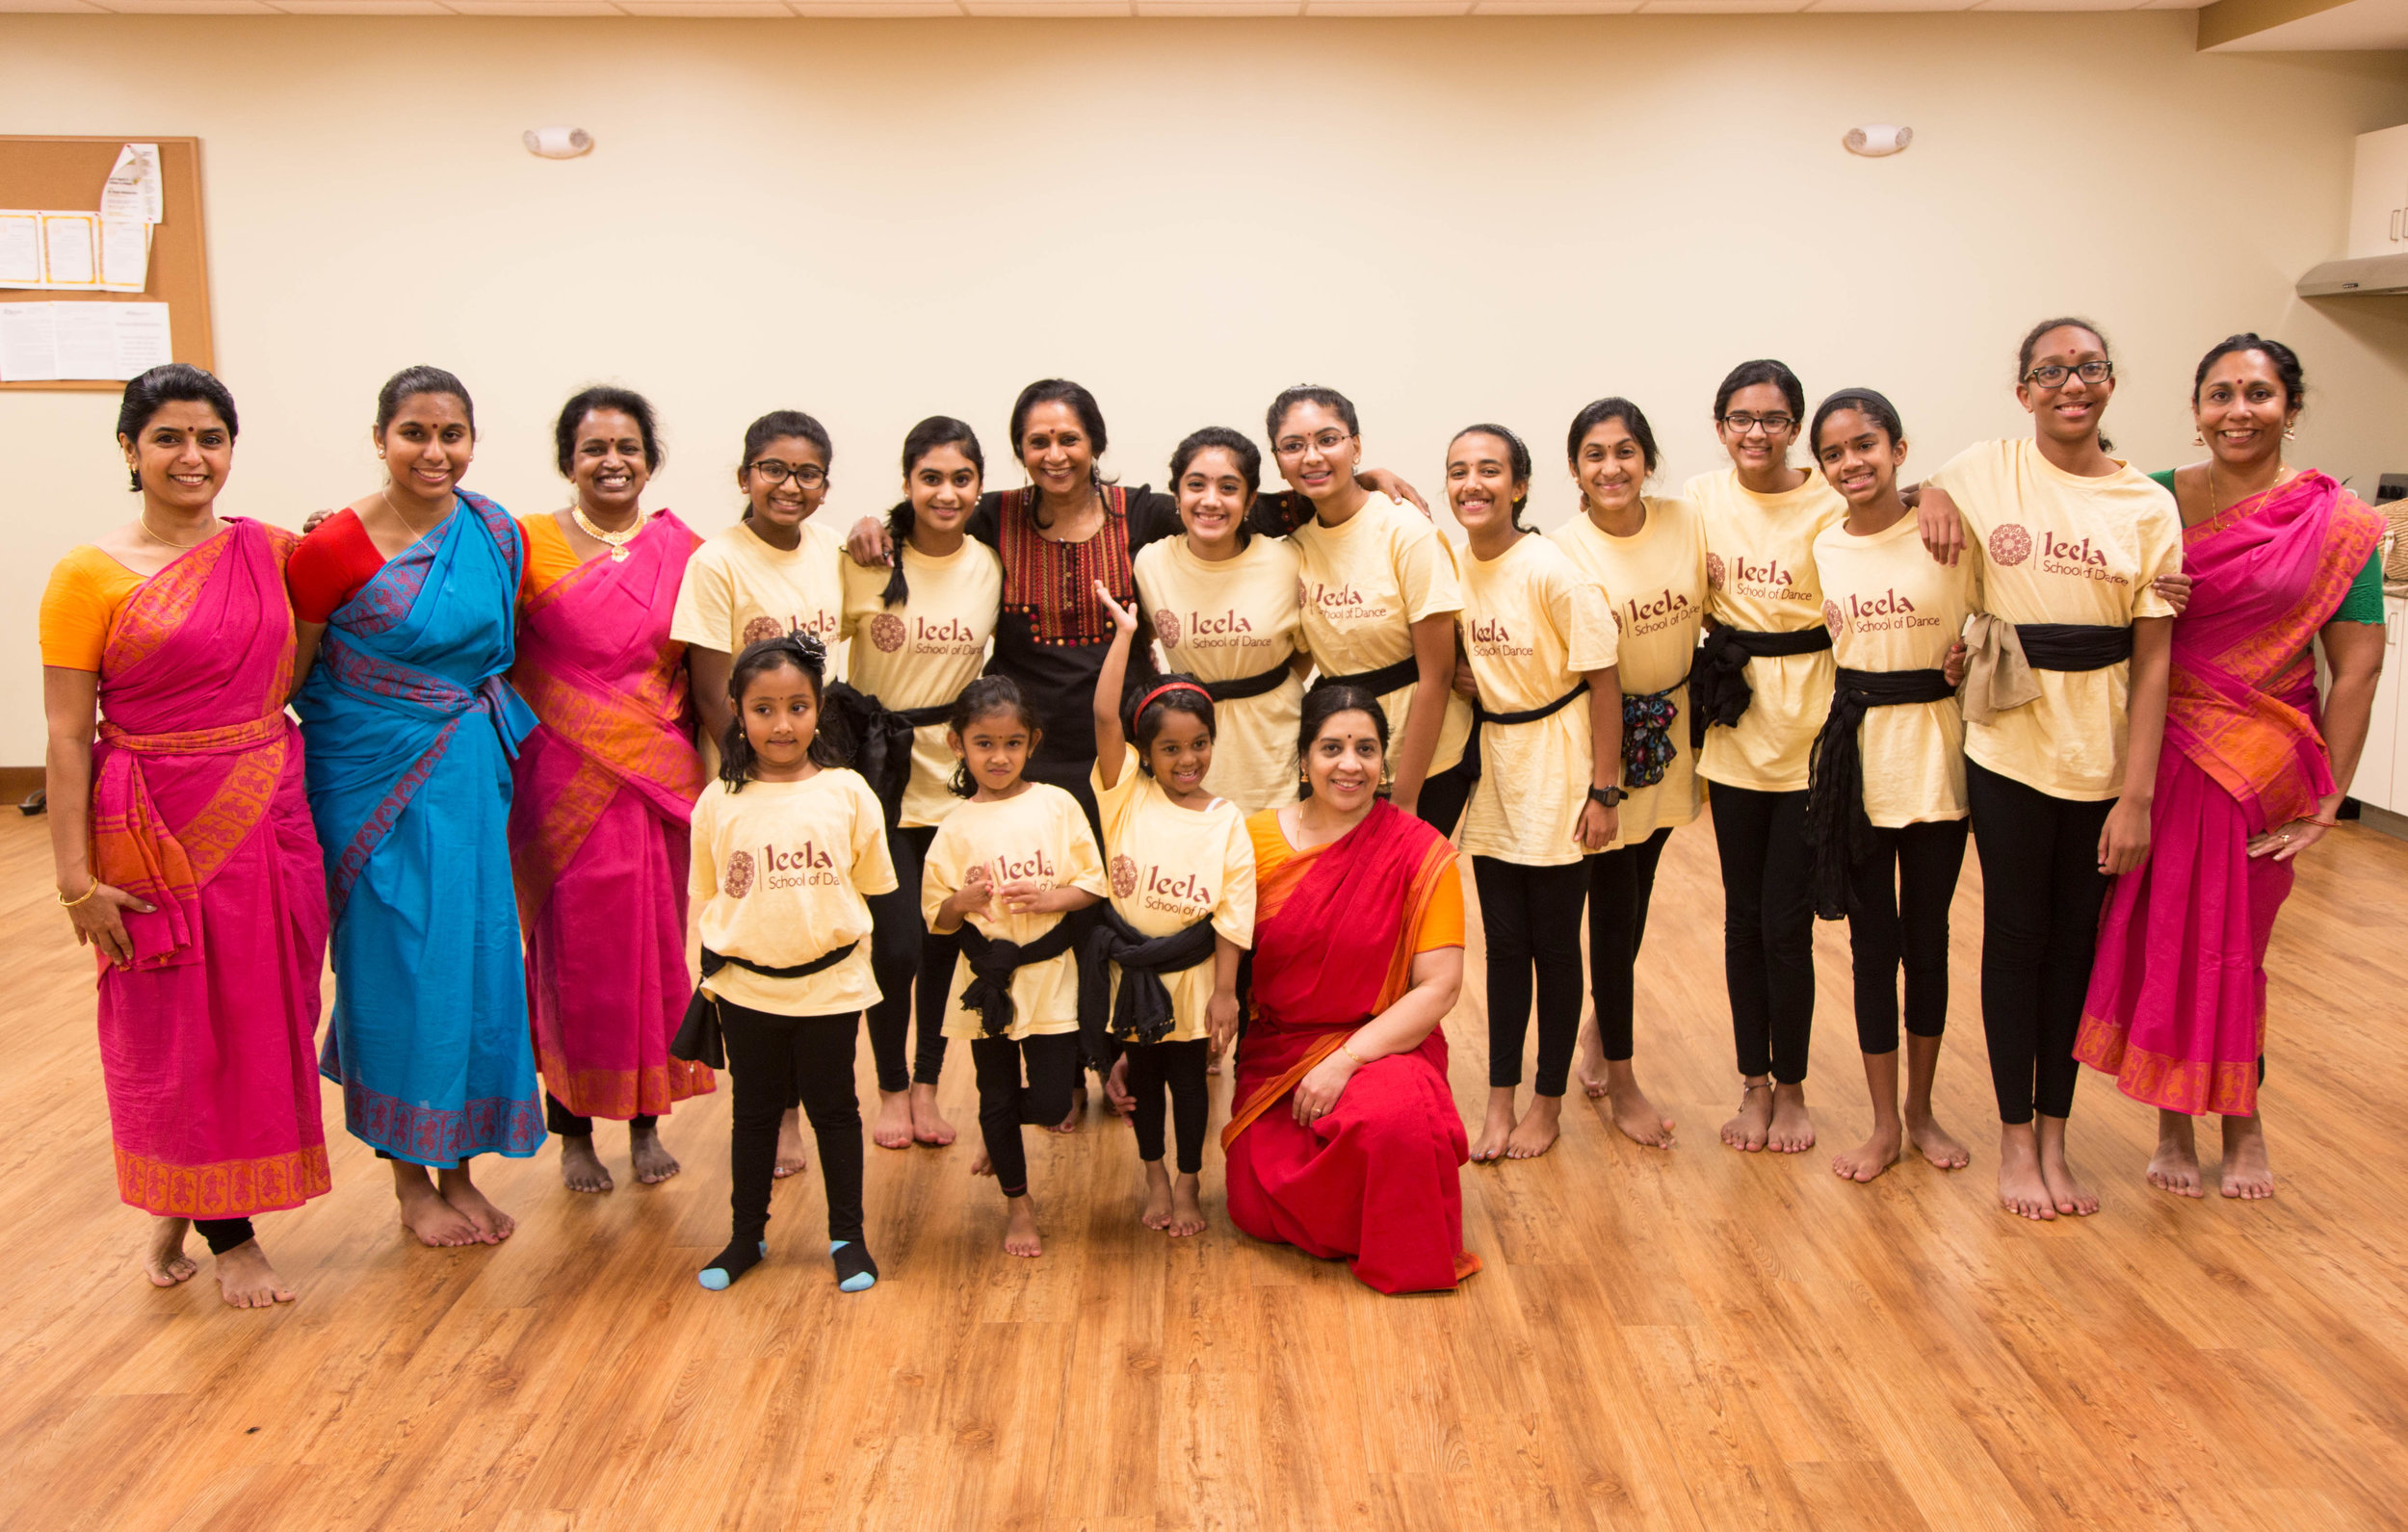 Asha Bala pictured with her students at the Leela School of Dance in Cary.